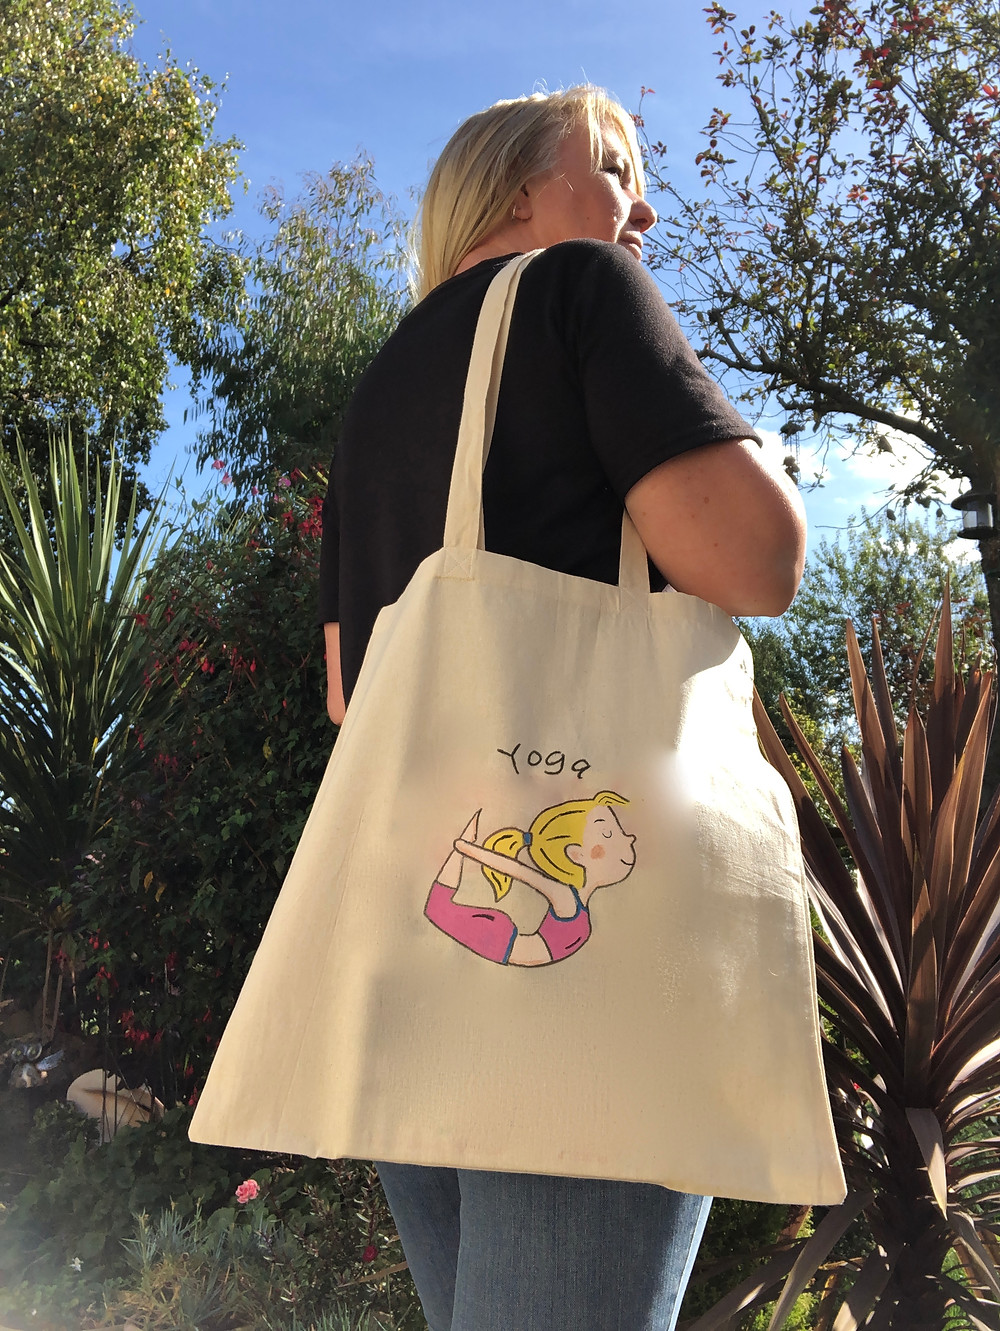 yoga tote bag featuring bow pose